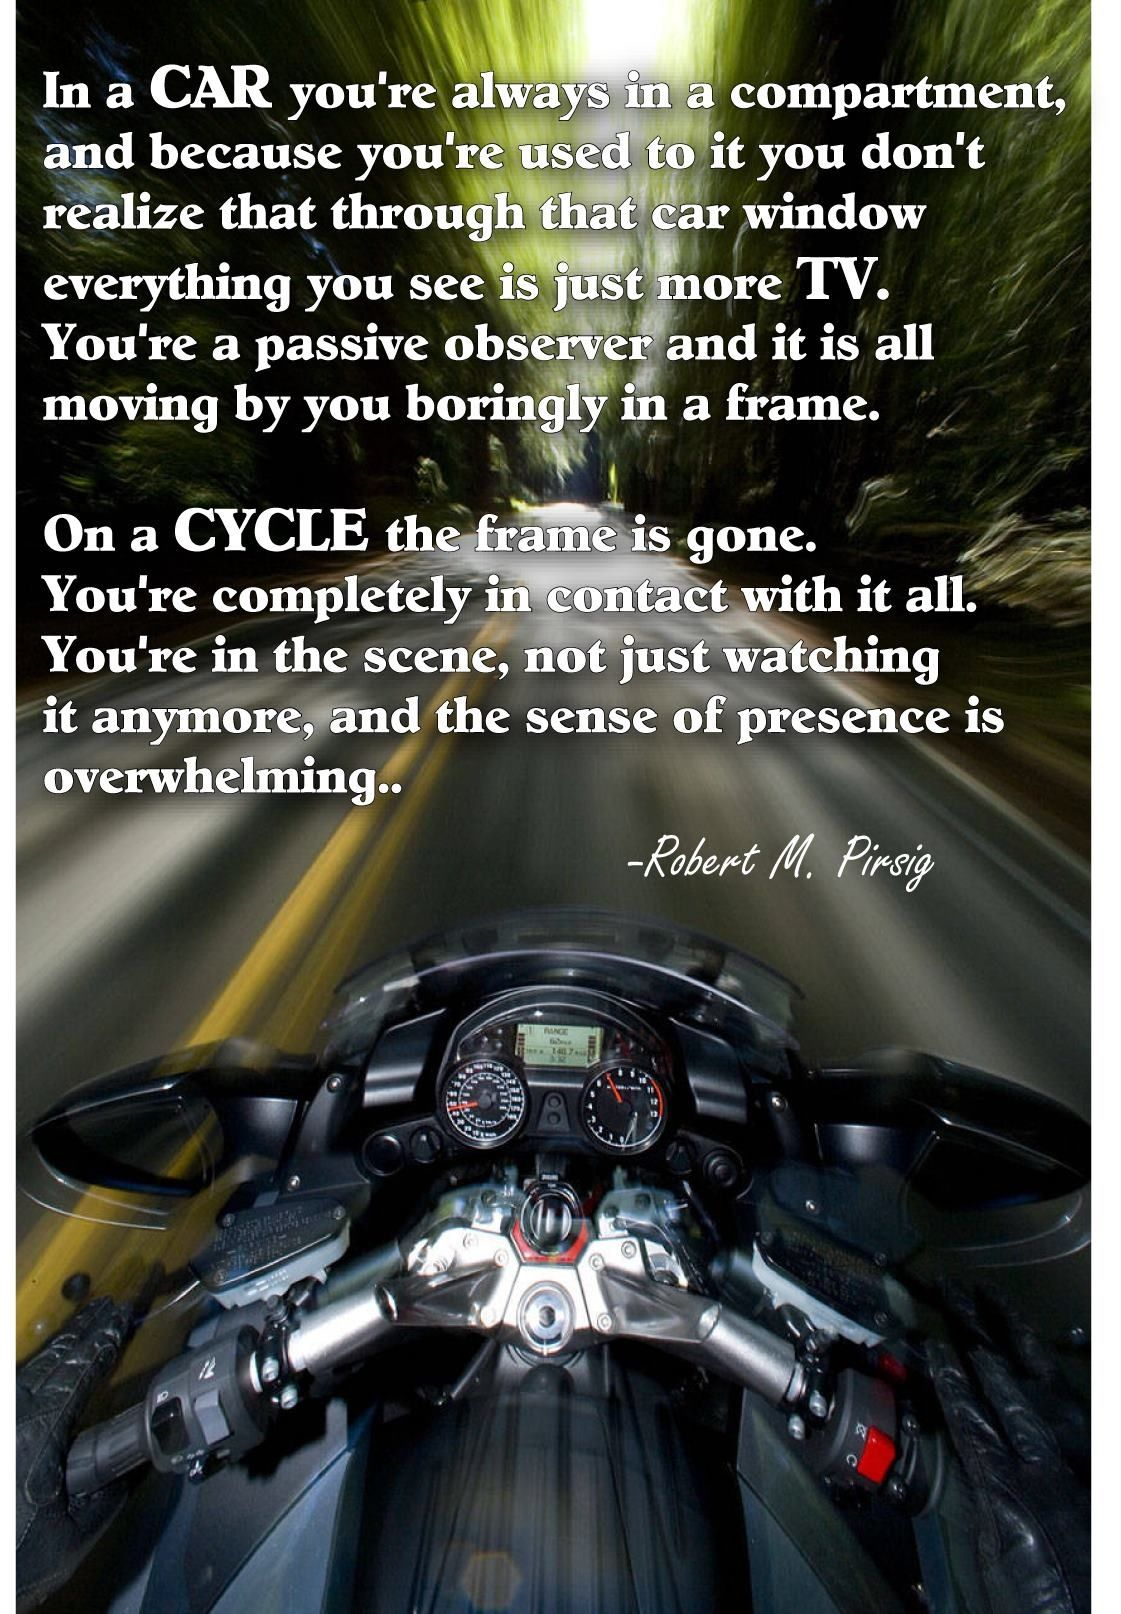 On a cycle...the sense of presence is overwhelming. Motorcycle quotes. -Zen and the Art of the Motorcycle Maintenance.